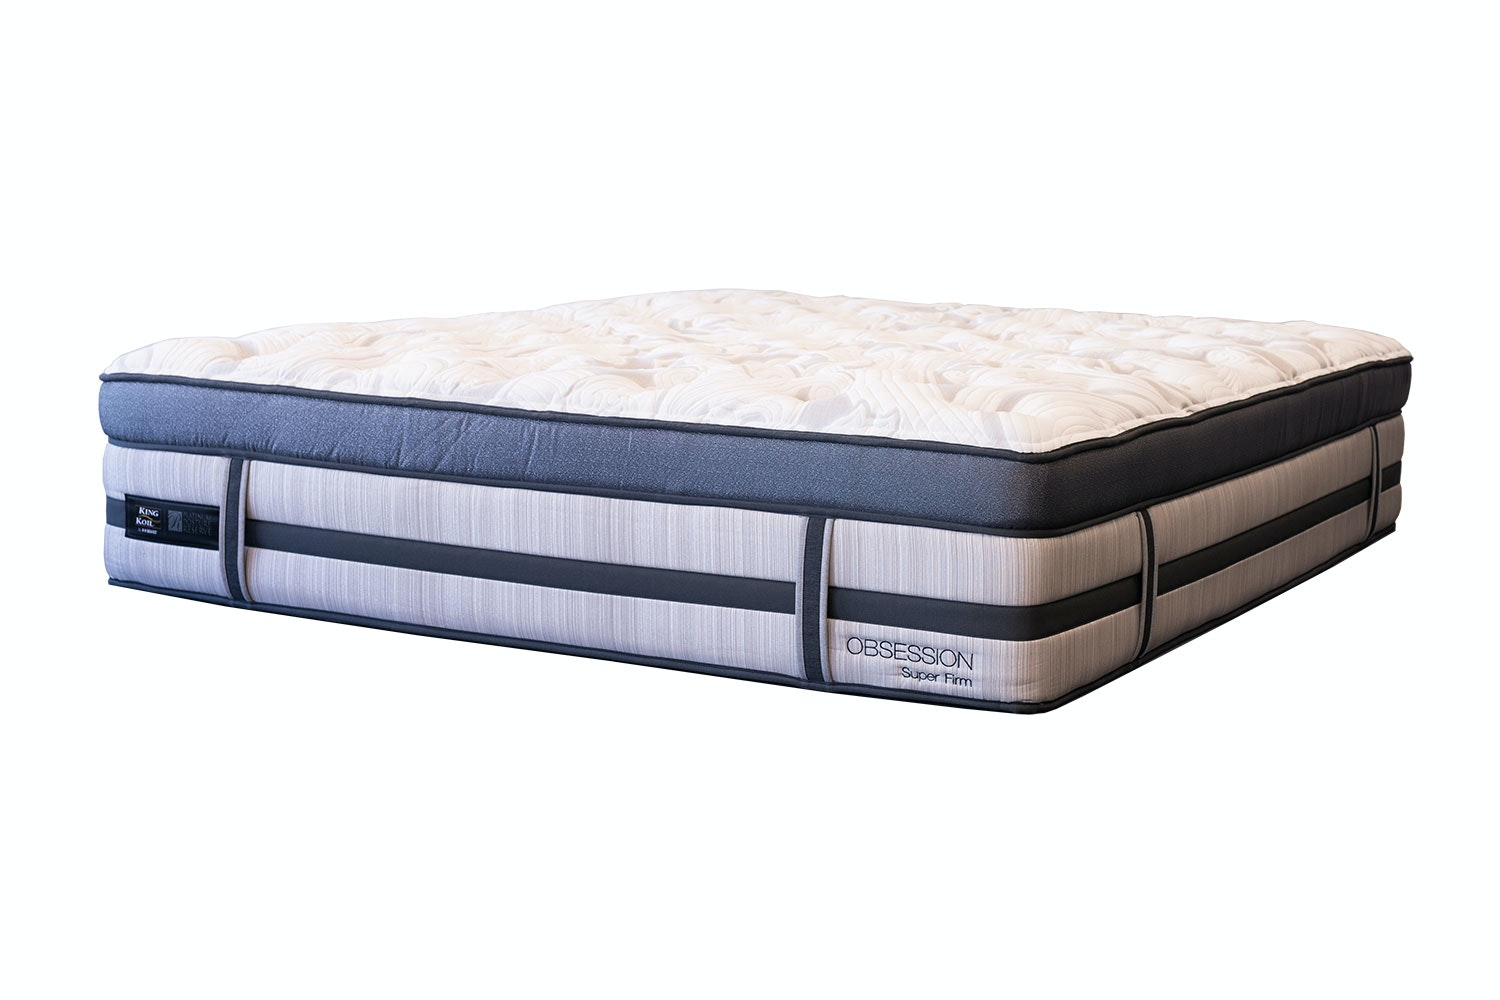 Obsession Super Firm Double Mattress by King Koil